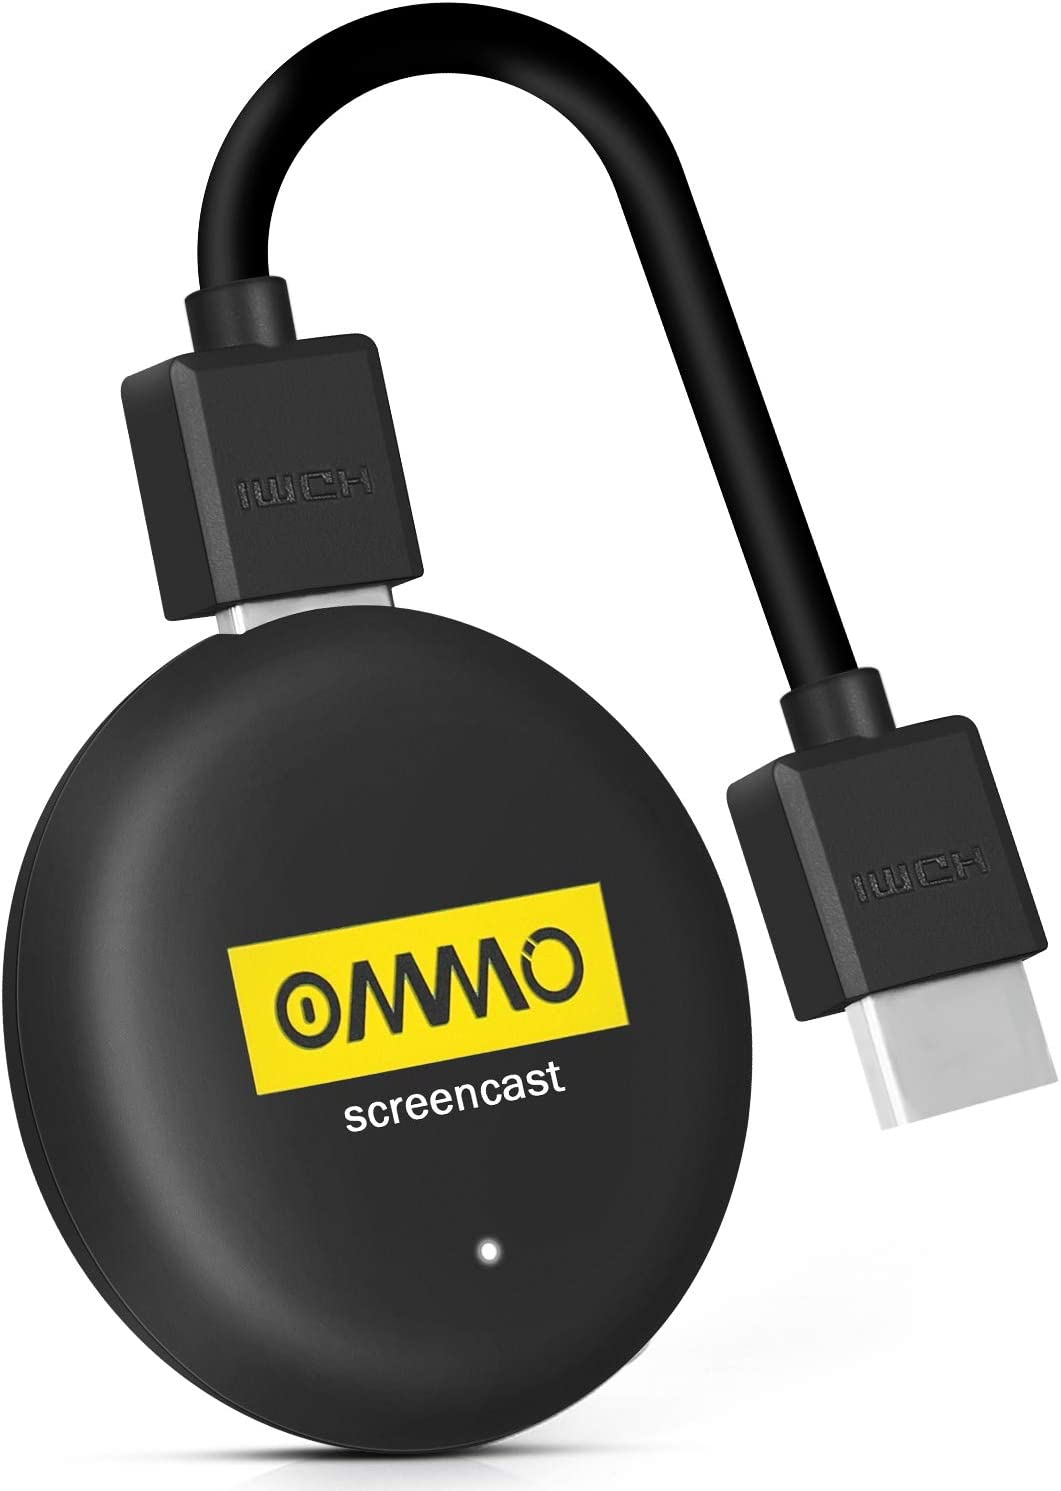 OMMO Airplay Dongle, 4K HDR Wireless HDMI Display Dongle Adapter, 5G and 2.4G WiFi Mobile Screen Mirroring Receiver, for Android/iOS/Windows/Mac to HDTV/Monitor/Projector